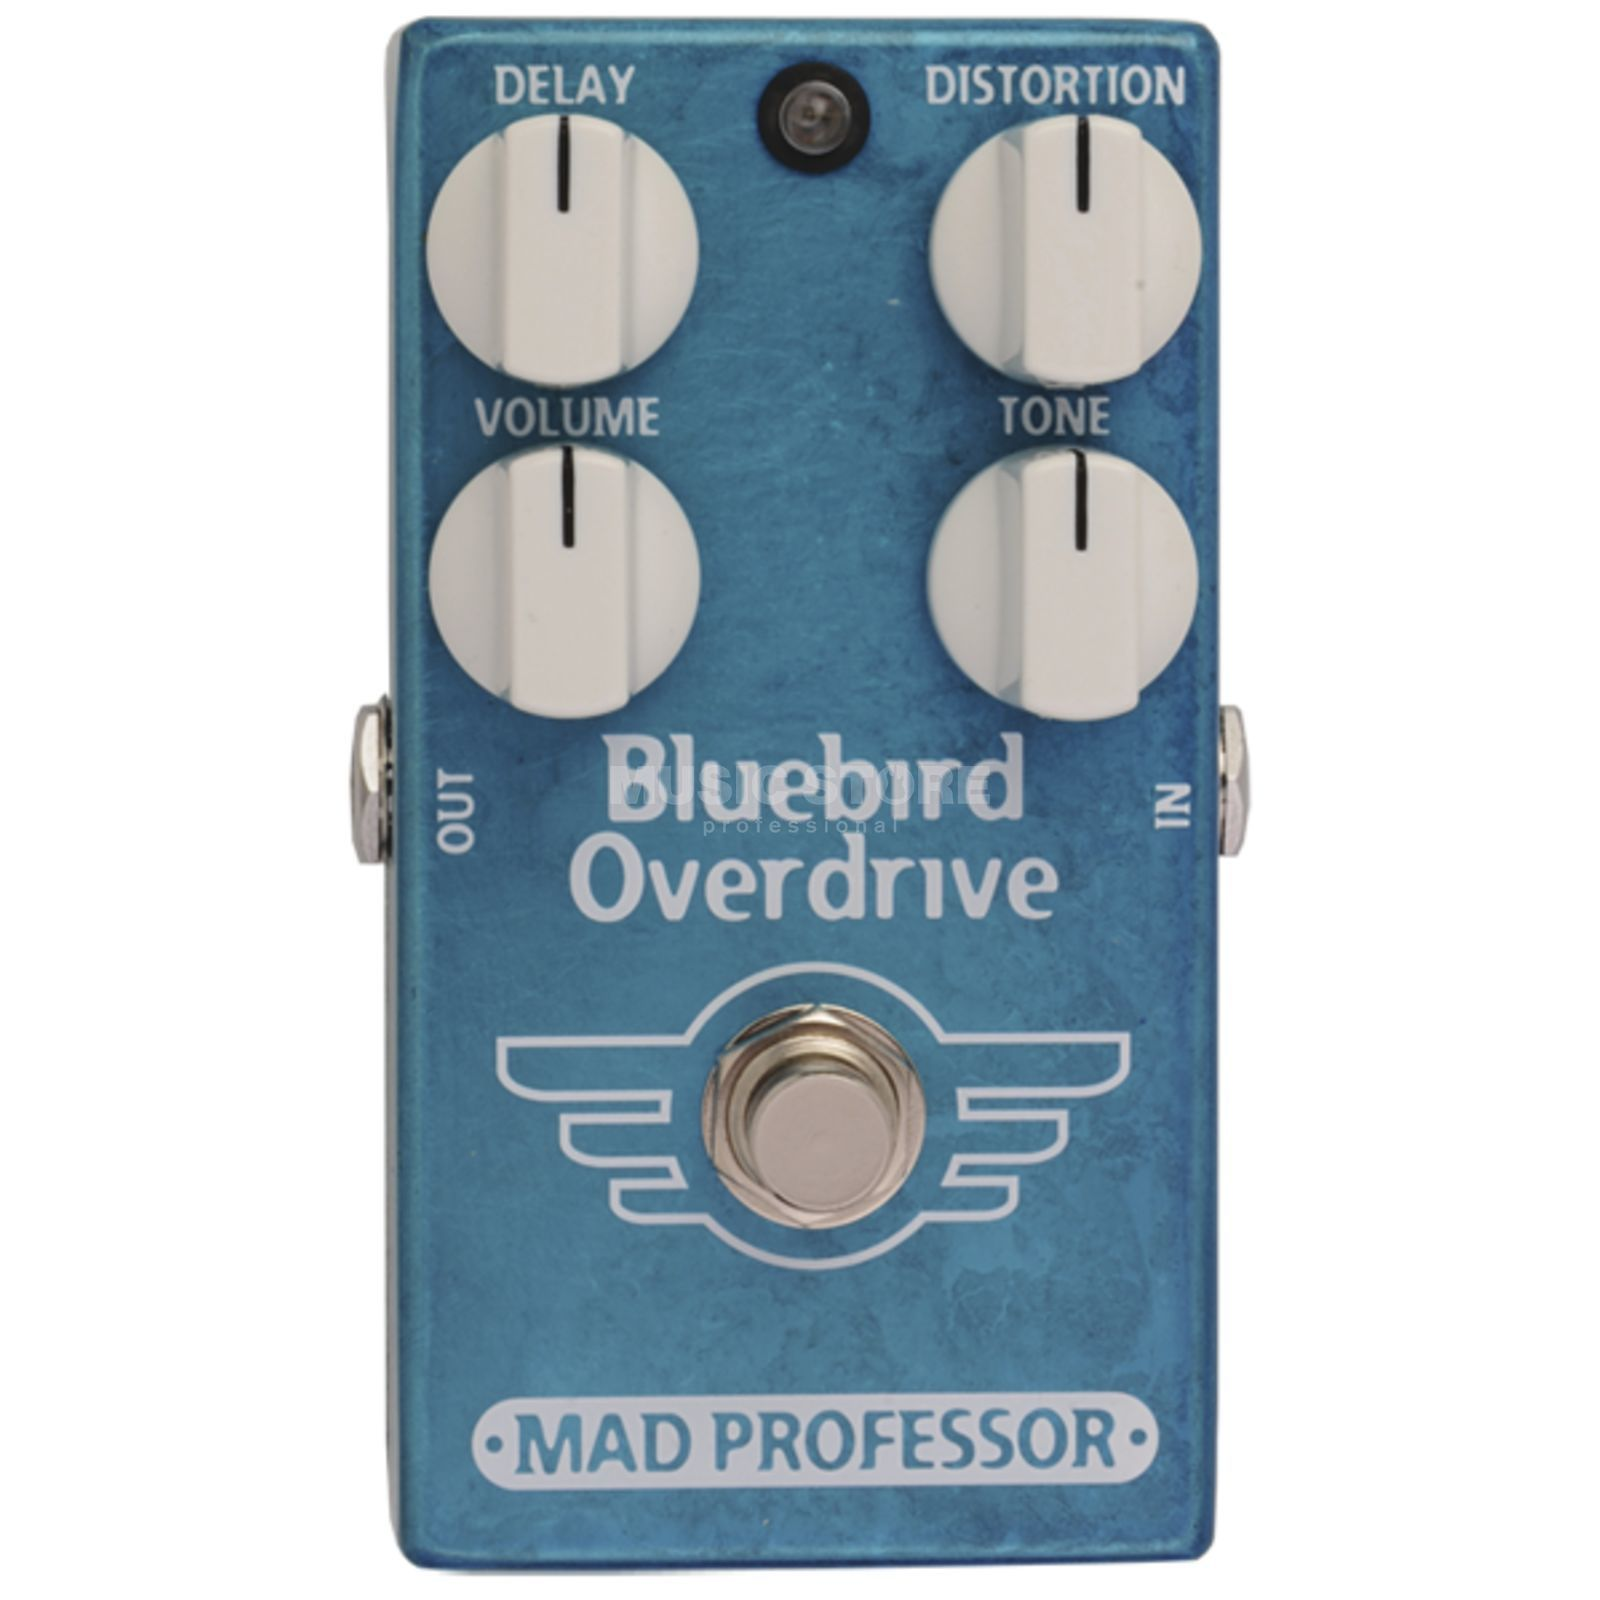 Mad Professor Bluebird Overdrive Delay Produktbild